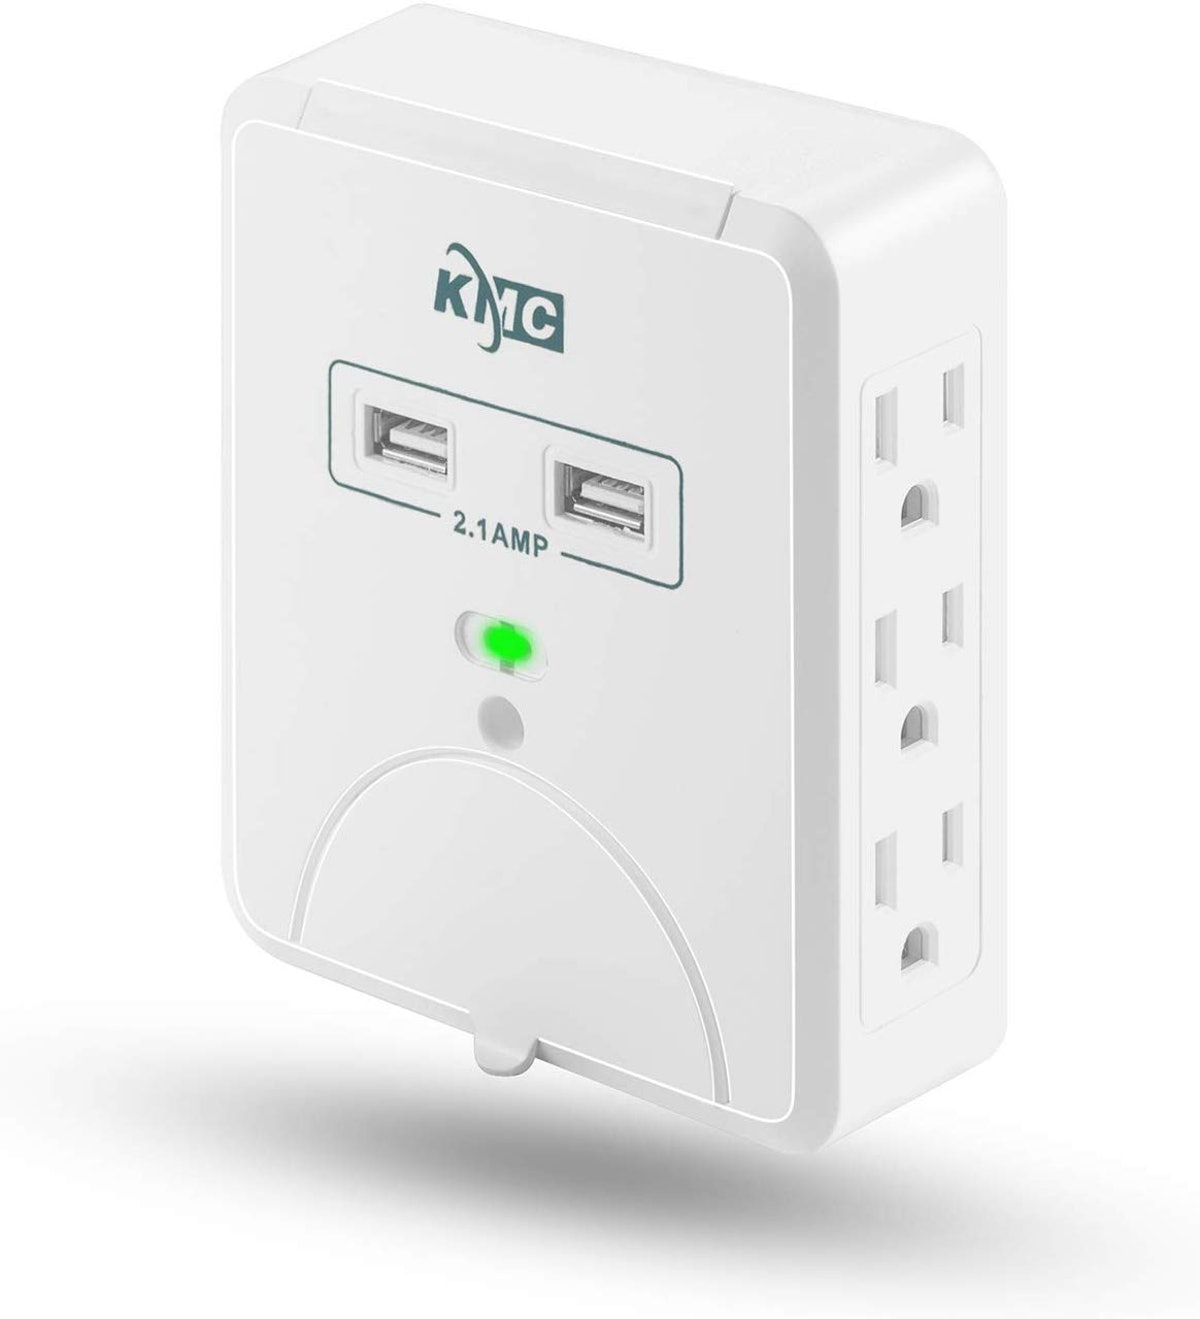 KMC Wall Surge Protector, 6 Outlets